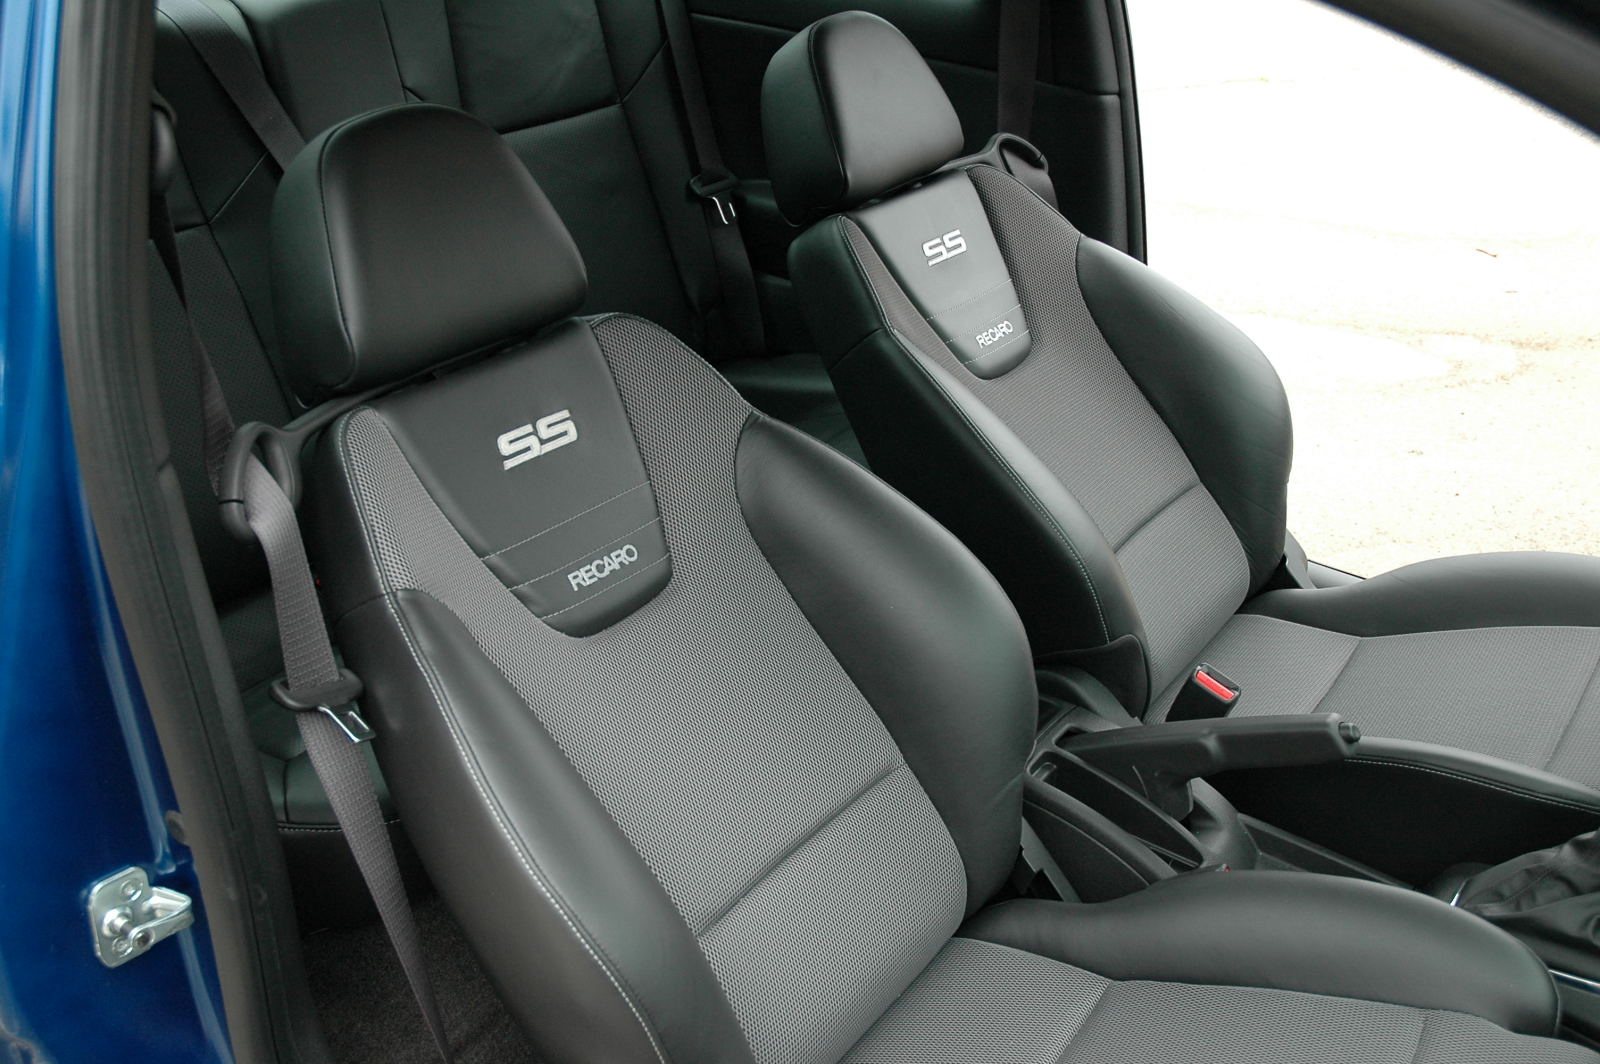 2007 Chevy Cobalt Lt Seat Covers Velcromag